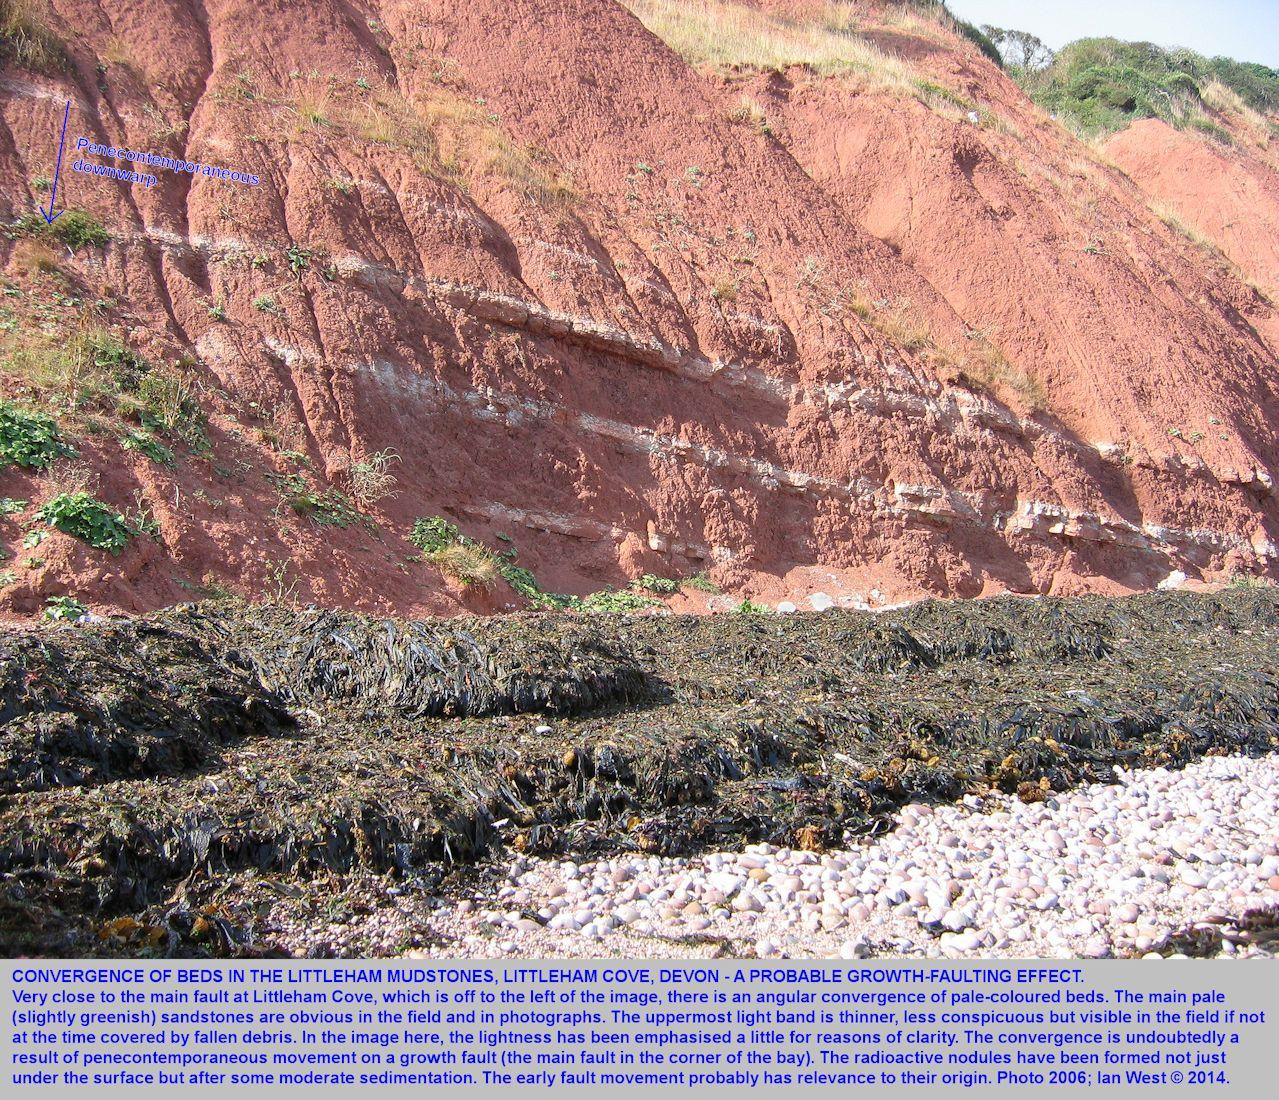 A wedge-out of some Permian mudstones as a result of growth-faulting in the corner of Littleham Cove, near Budleigh Salterton, Devon